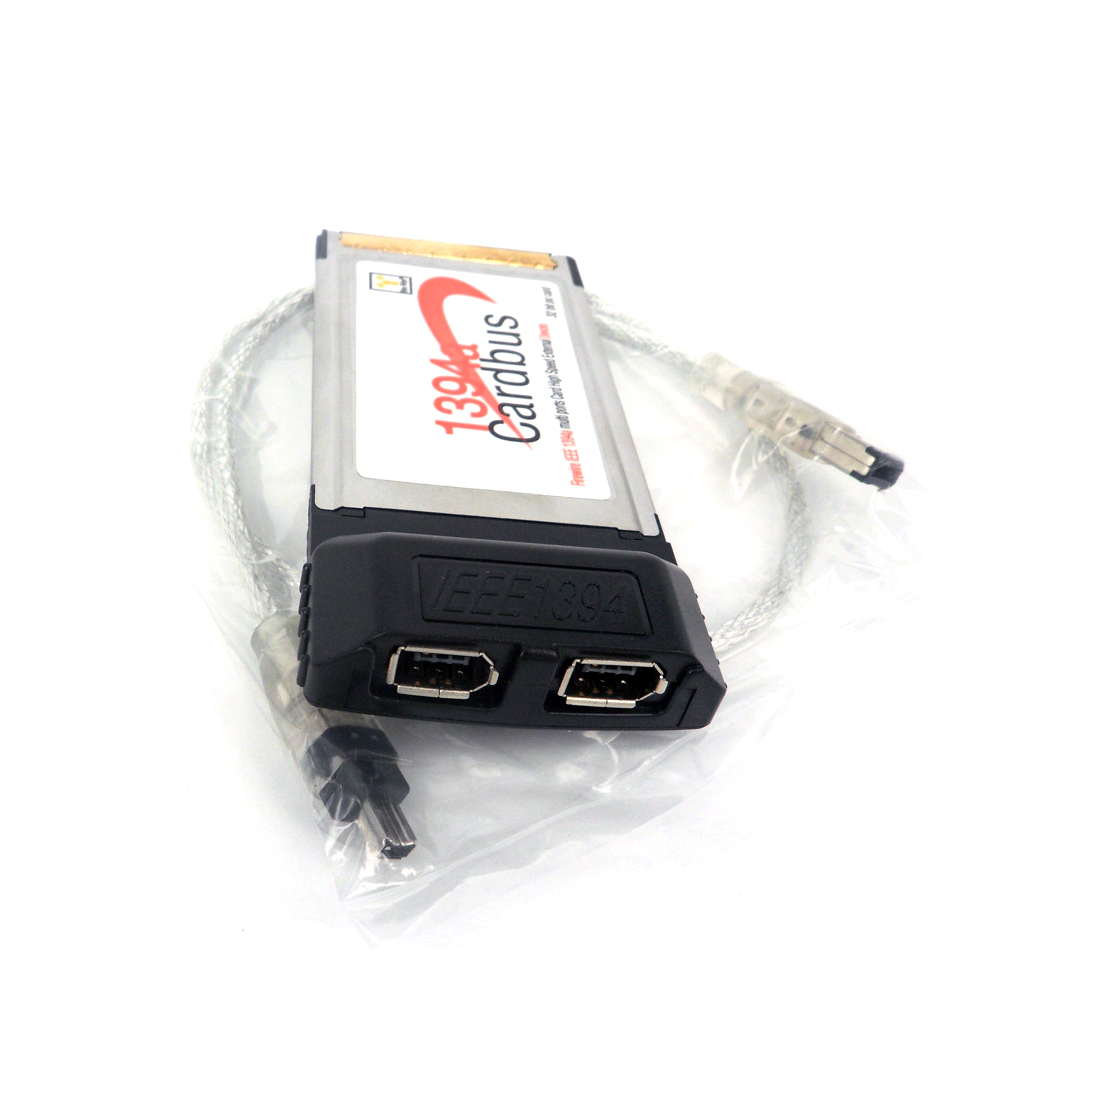 2 Port 6Pin 1394A IEEE For FireWire 1394 CardBus Card 54mm For PCMCIA Digital Camera DV Camcorders Hard Disks Drives Laptop PC